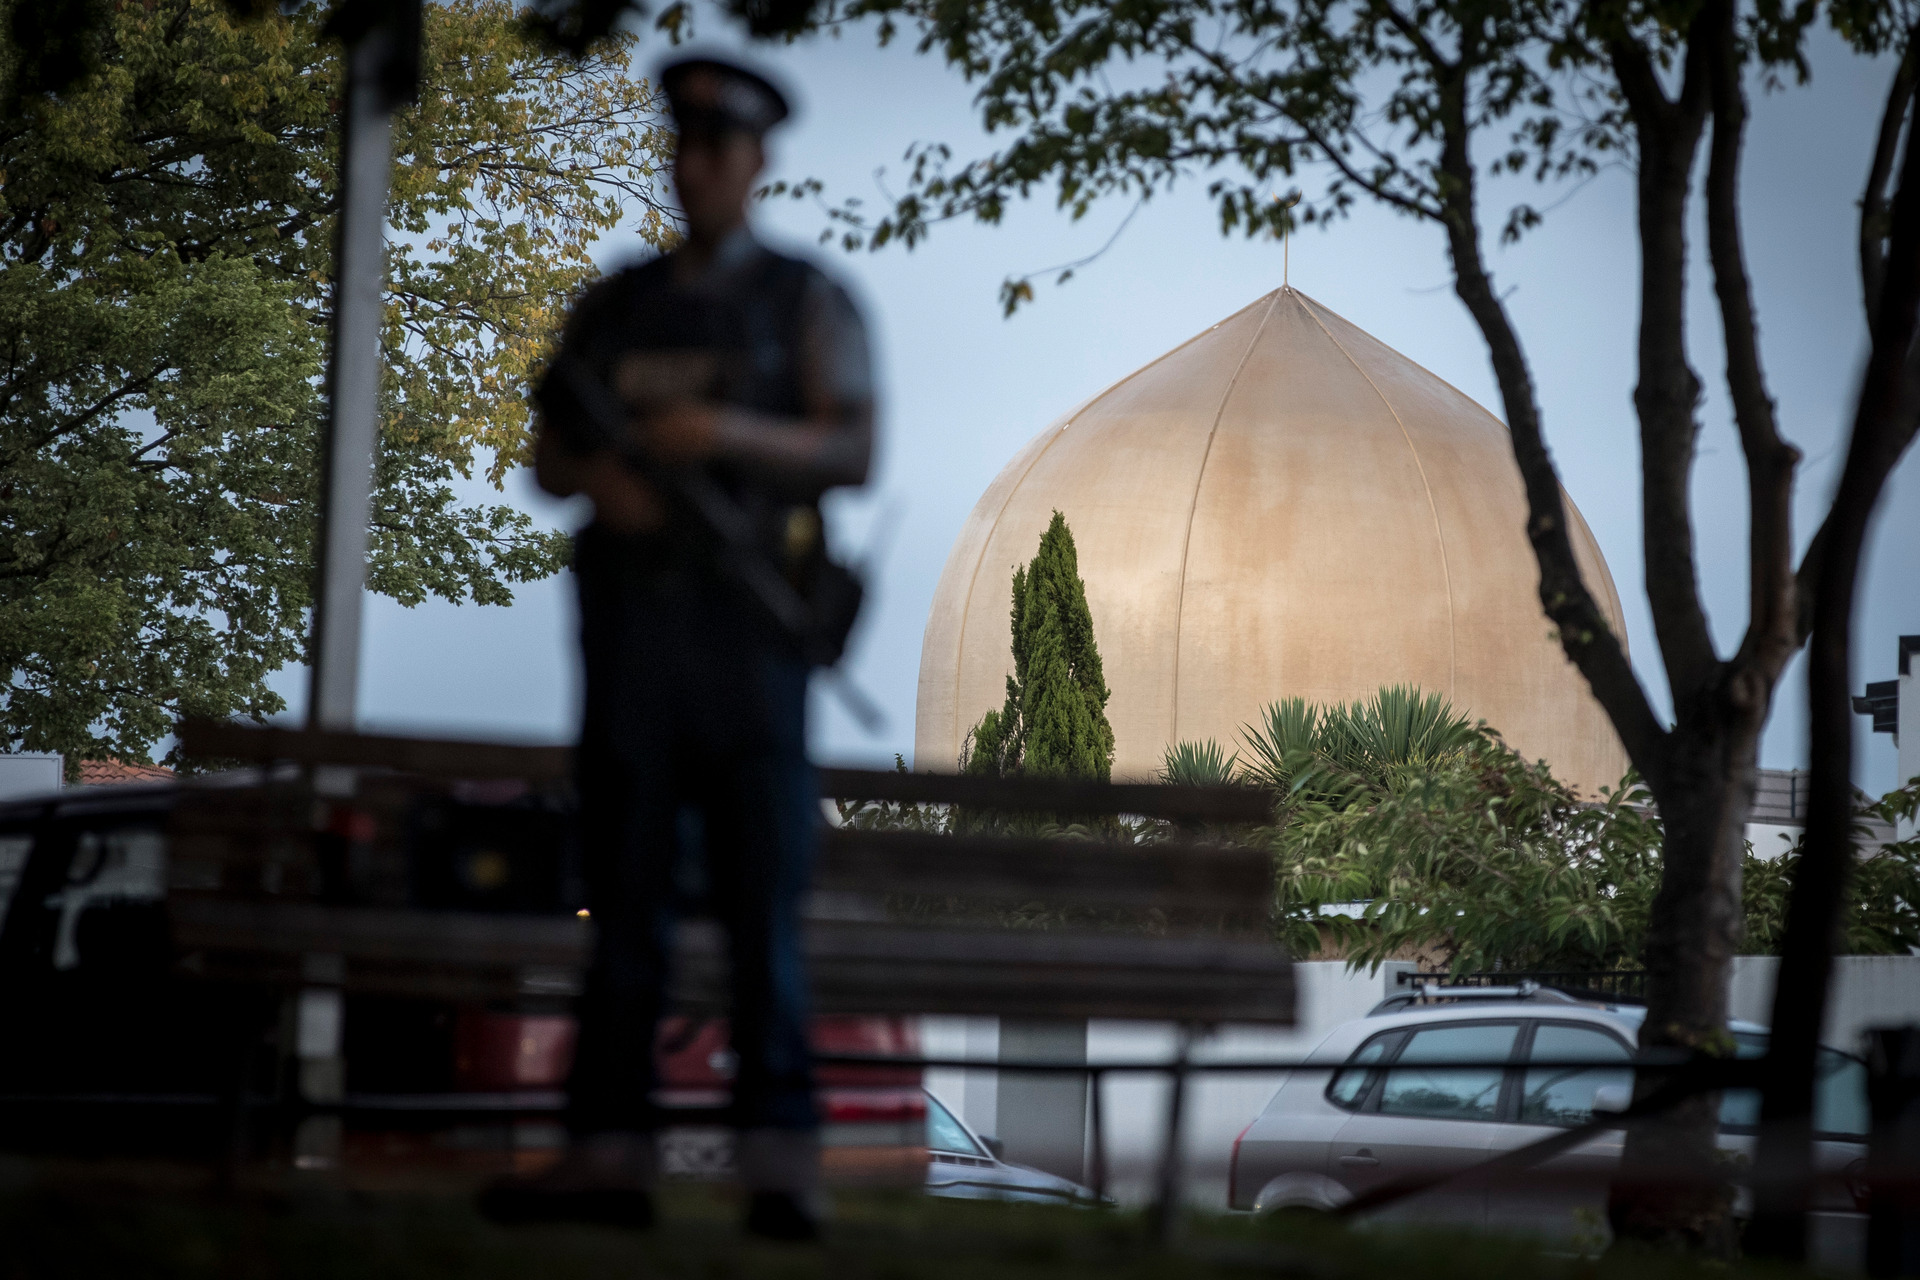 Schools thought Christchurch terror attacks lockdown order was a hoax